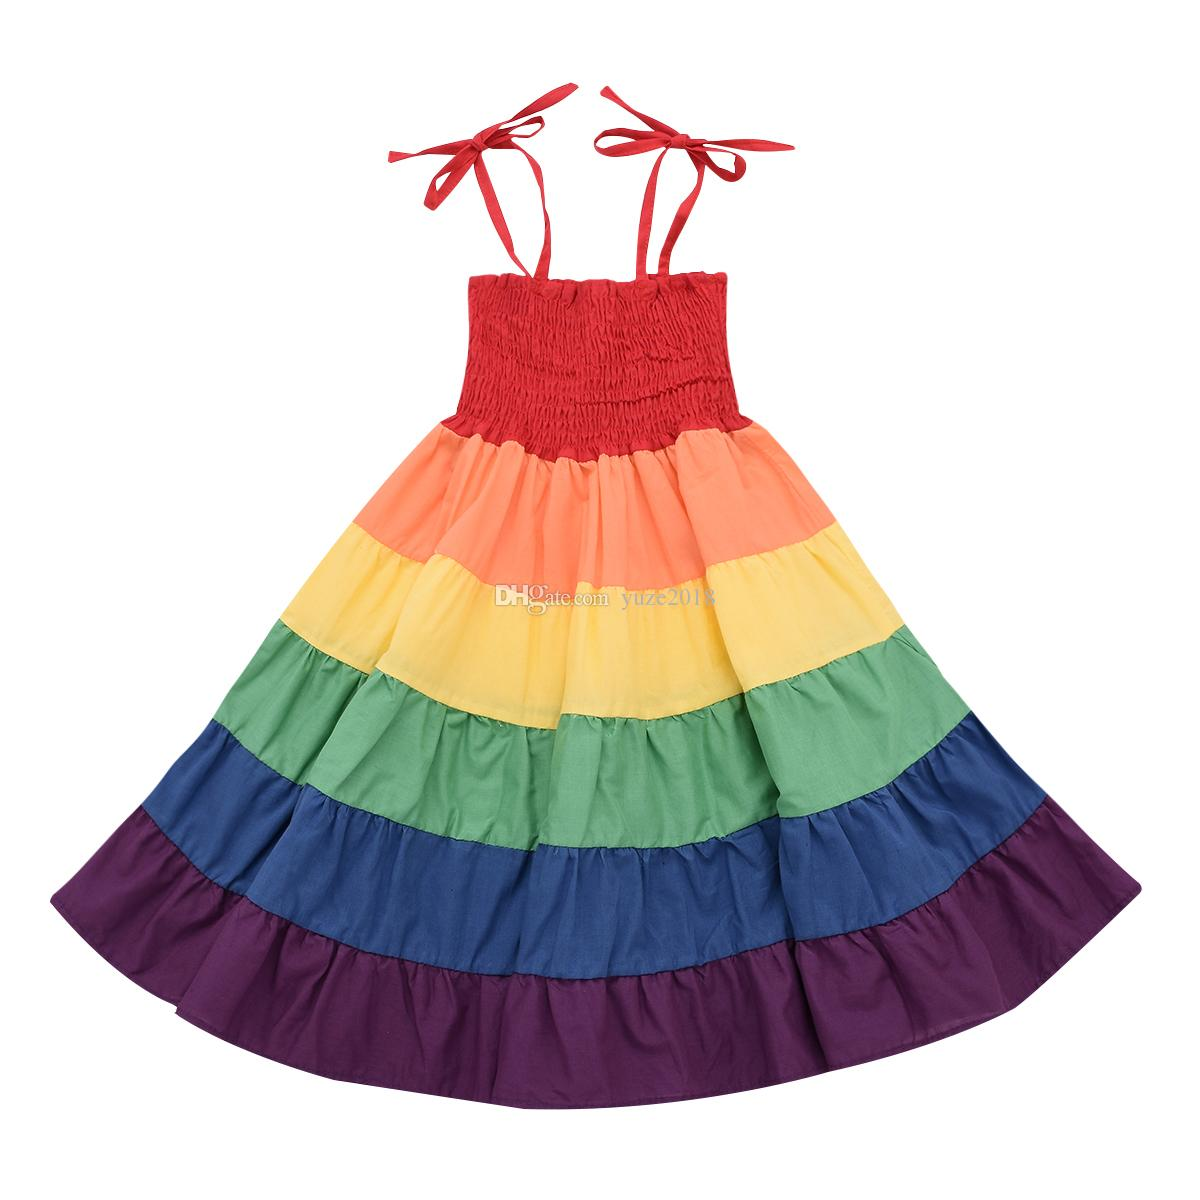 Toddler Infant Baby Girls Summer Sleeveless Rainbow Dress Tulle Dresses Clothes